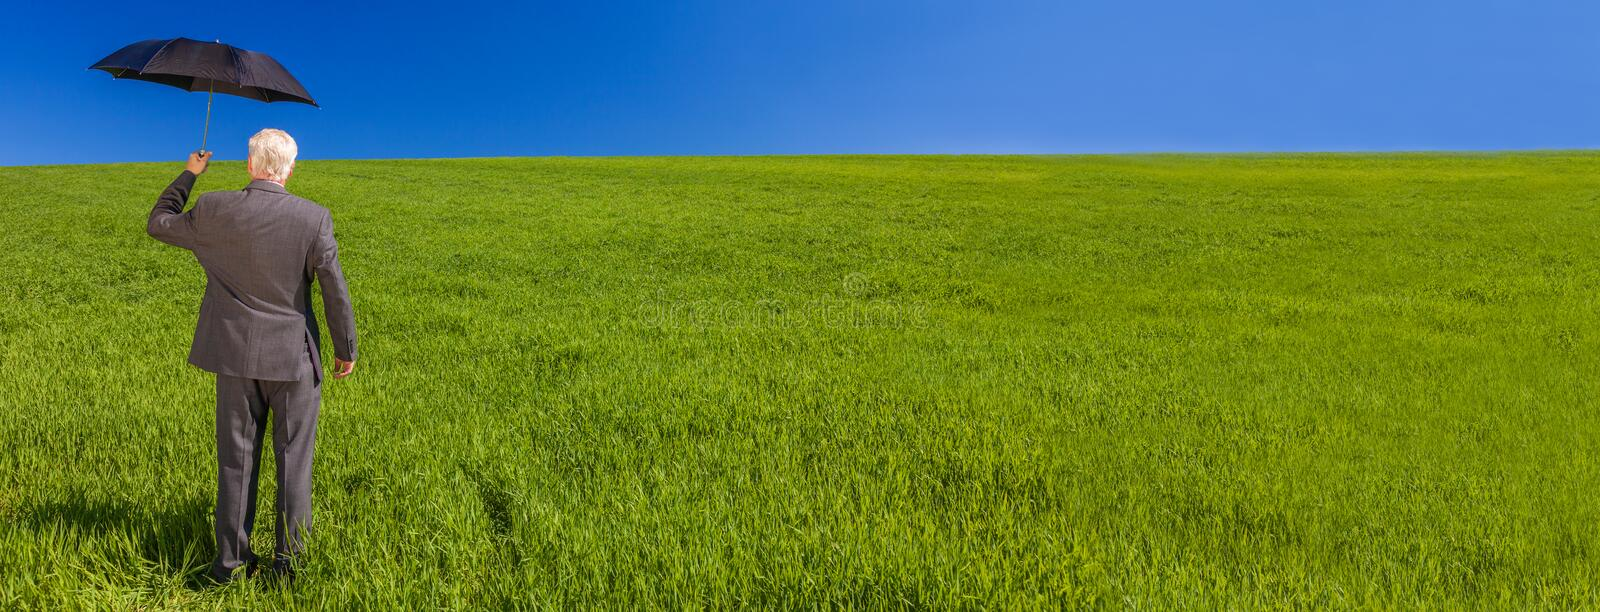 Web banner panoramic business concept photograph of a businessman standing in a green field under a bright blue sky holding and. Umbrella royalty free stock photo